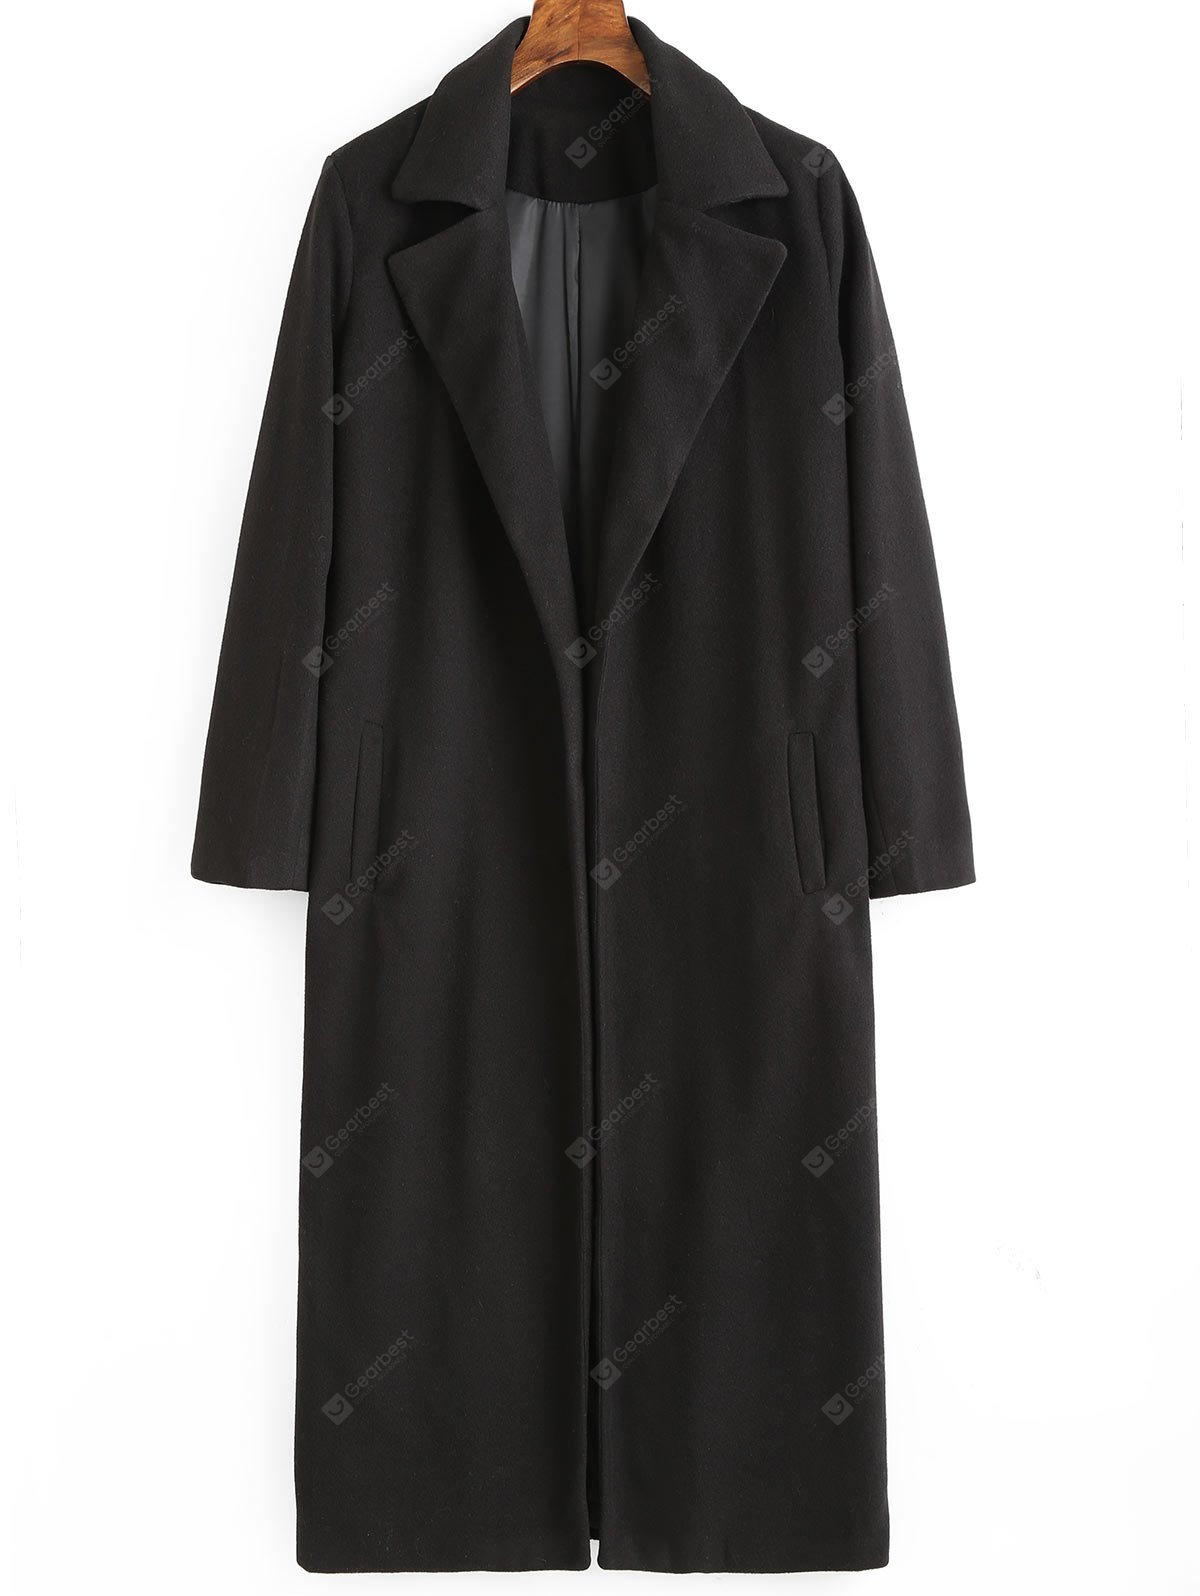 Lapel Collar Coat with Pockets